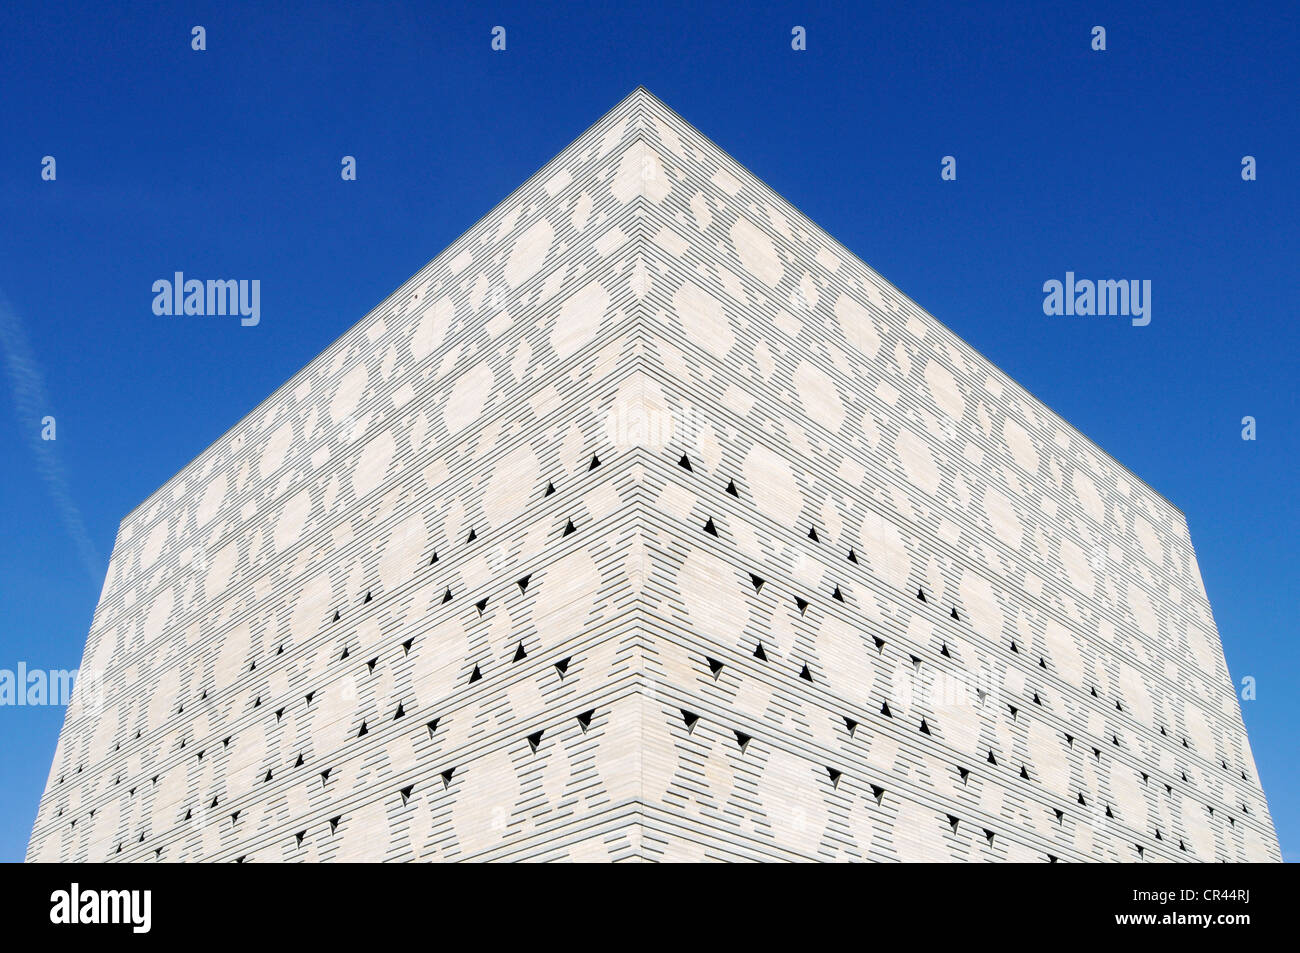 Stars of David, facade of the New Synagogue, Bochum, Ruhrgebiet area, North Rhine-Westphalia, Germany, Europe - Stock Image